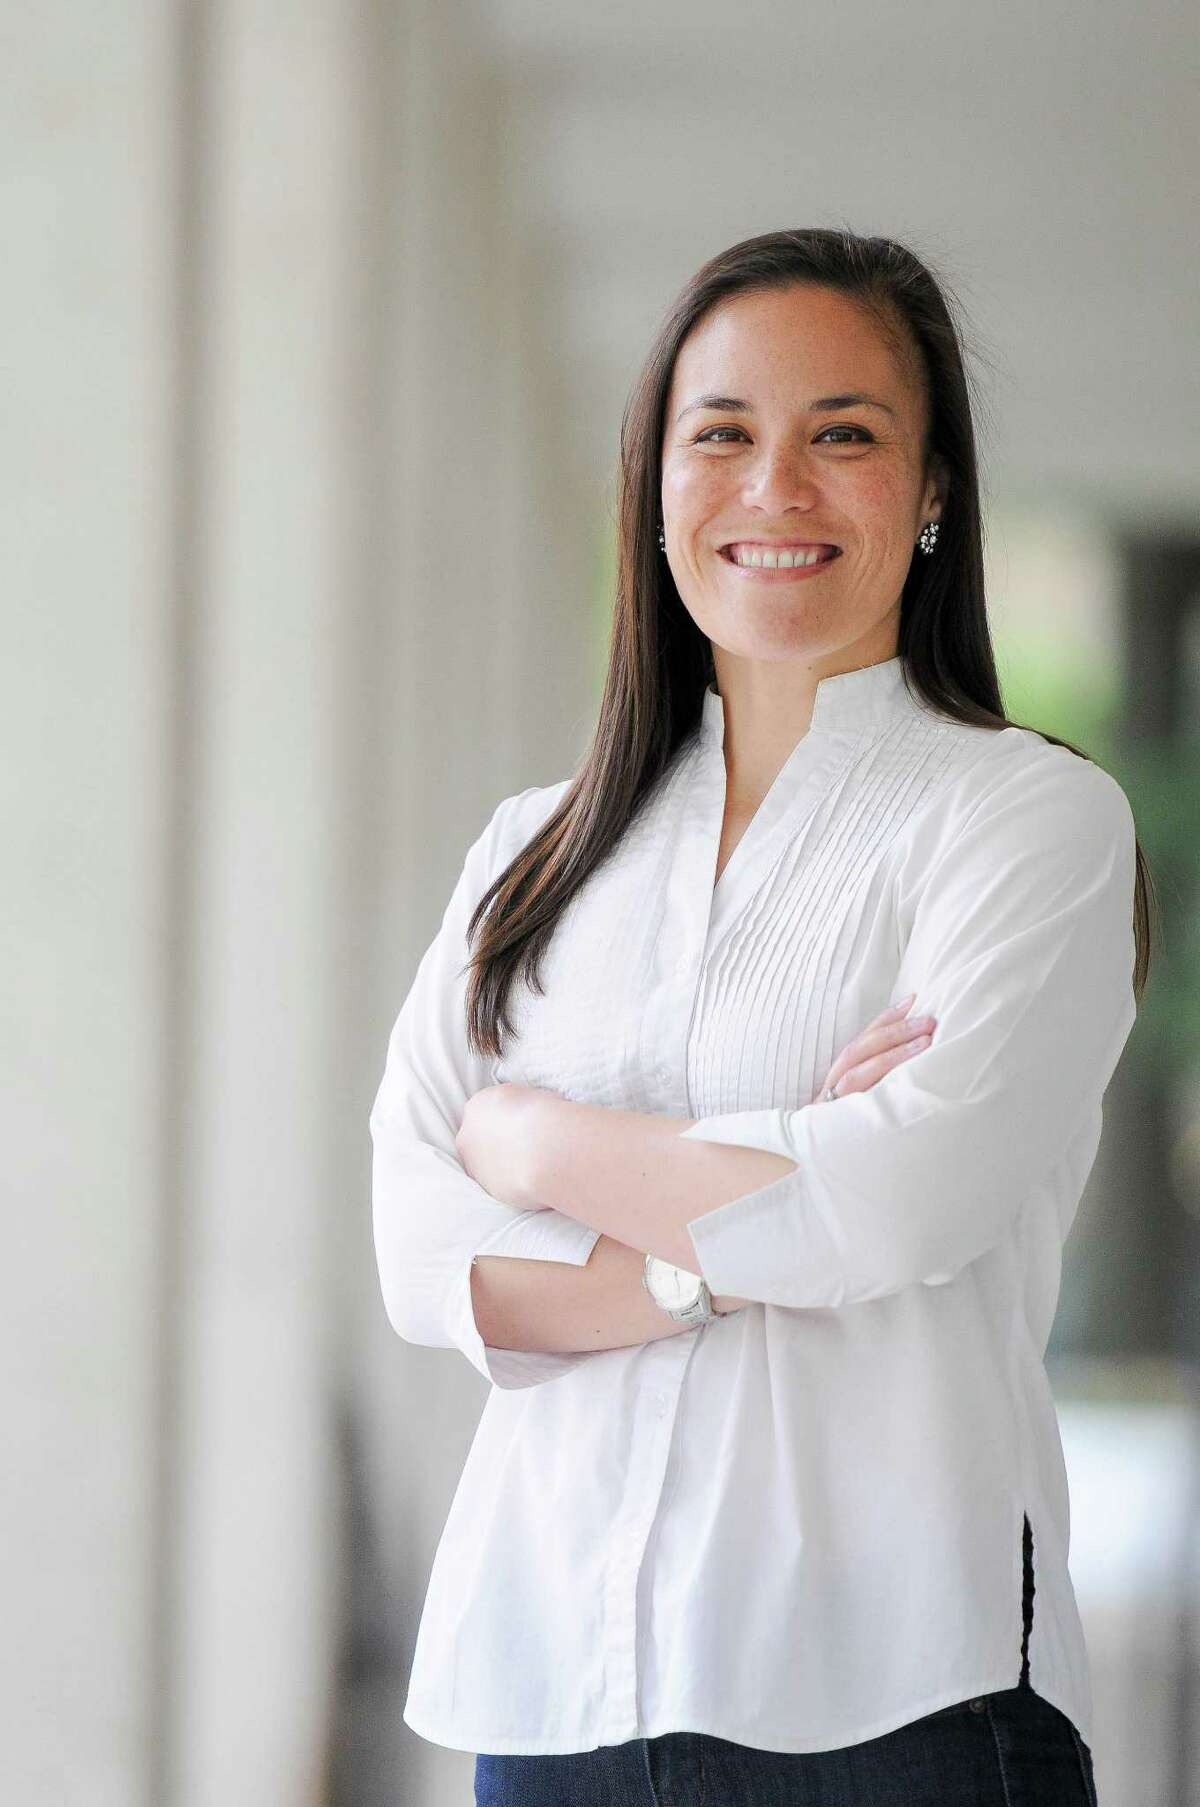 U.S. Air Force veteran and national security expert Gina Ortiz Jones, who is from San Antonio, is challenging Congressman Will Hurd for Texas' 23rd Congressional District. She is a Democrat.